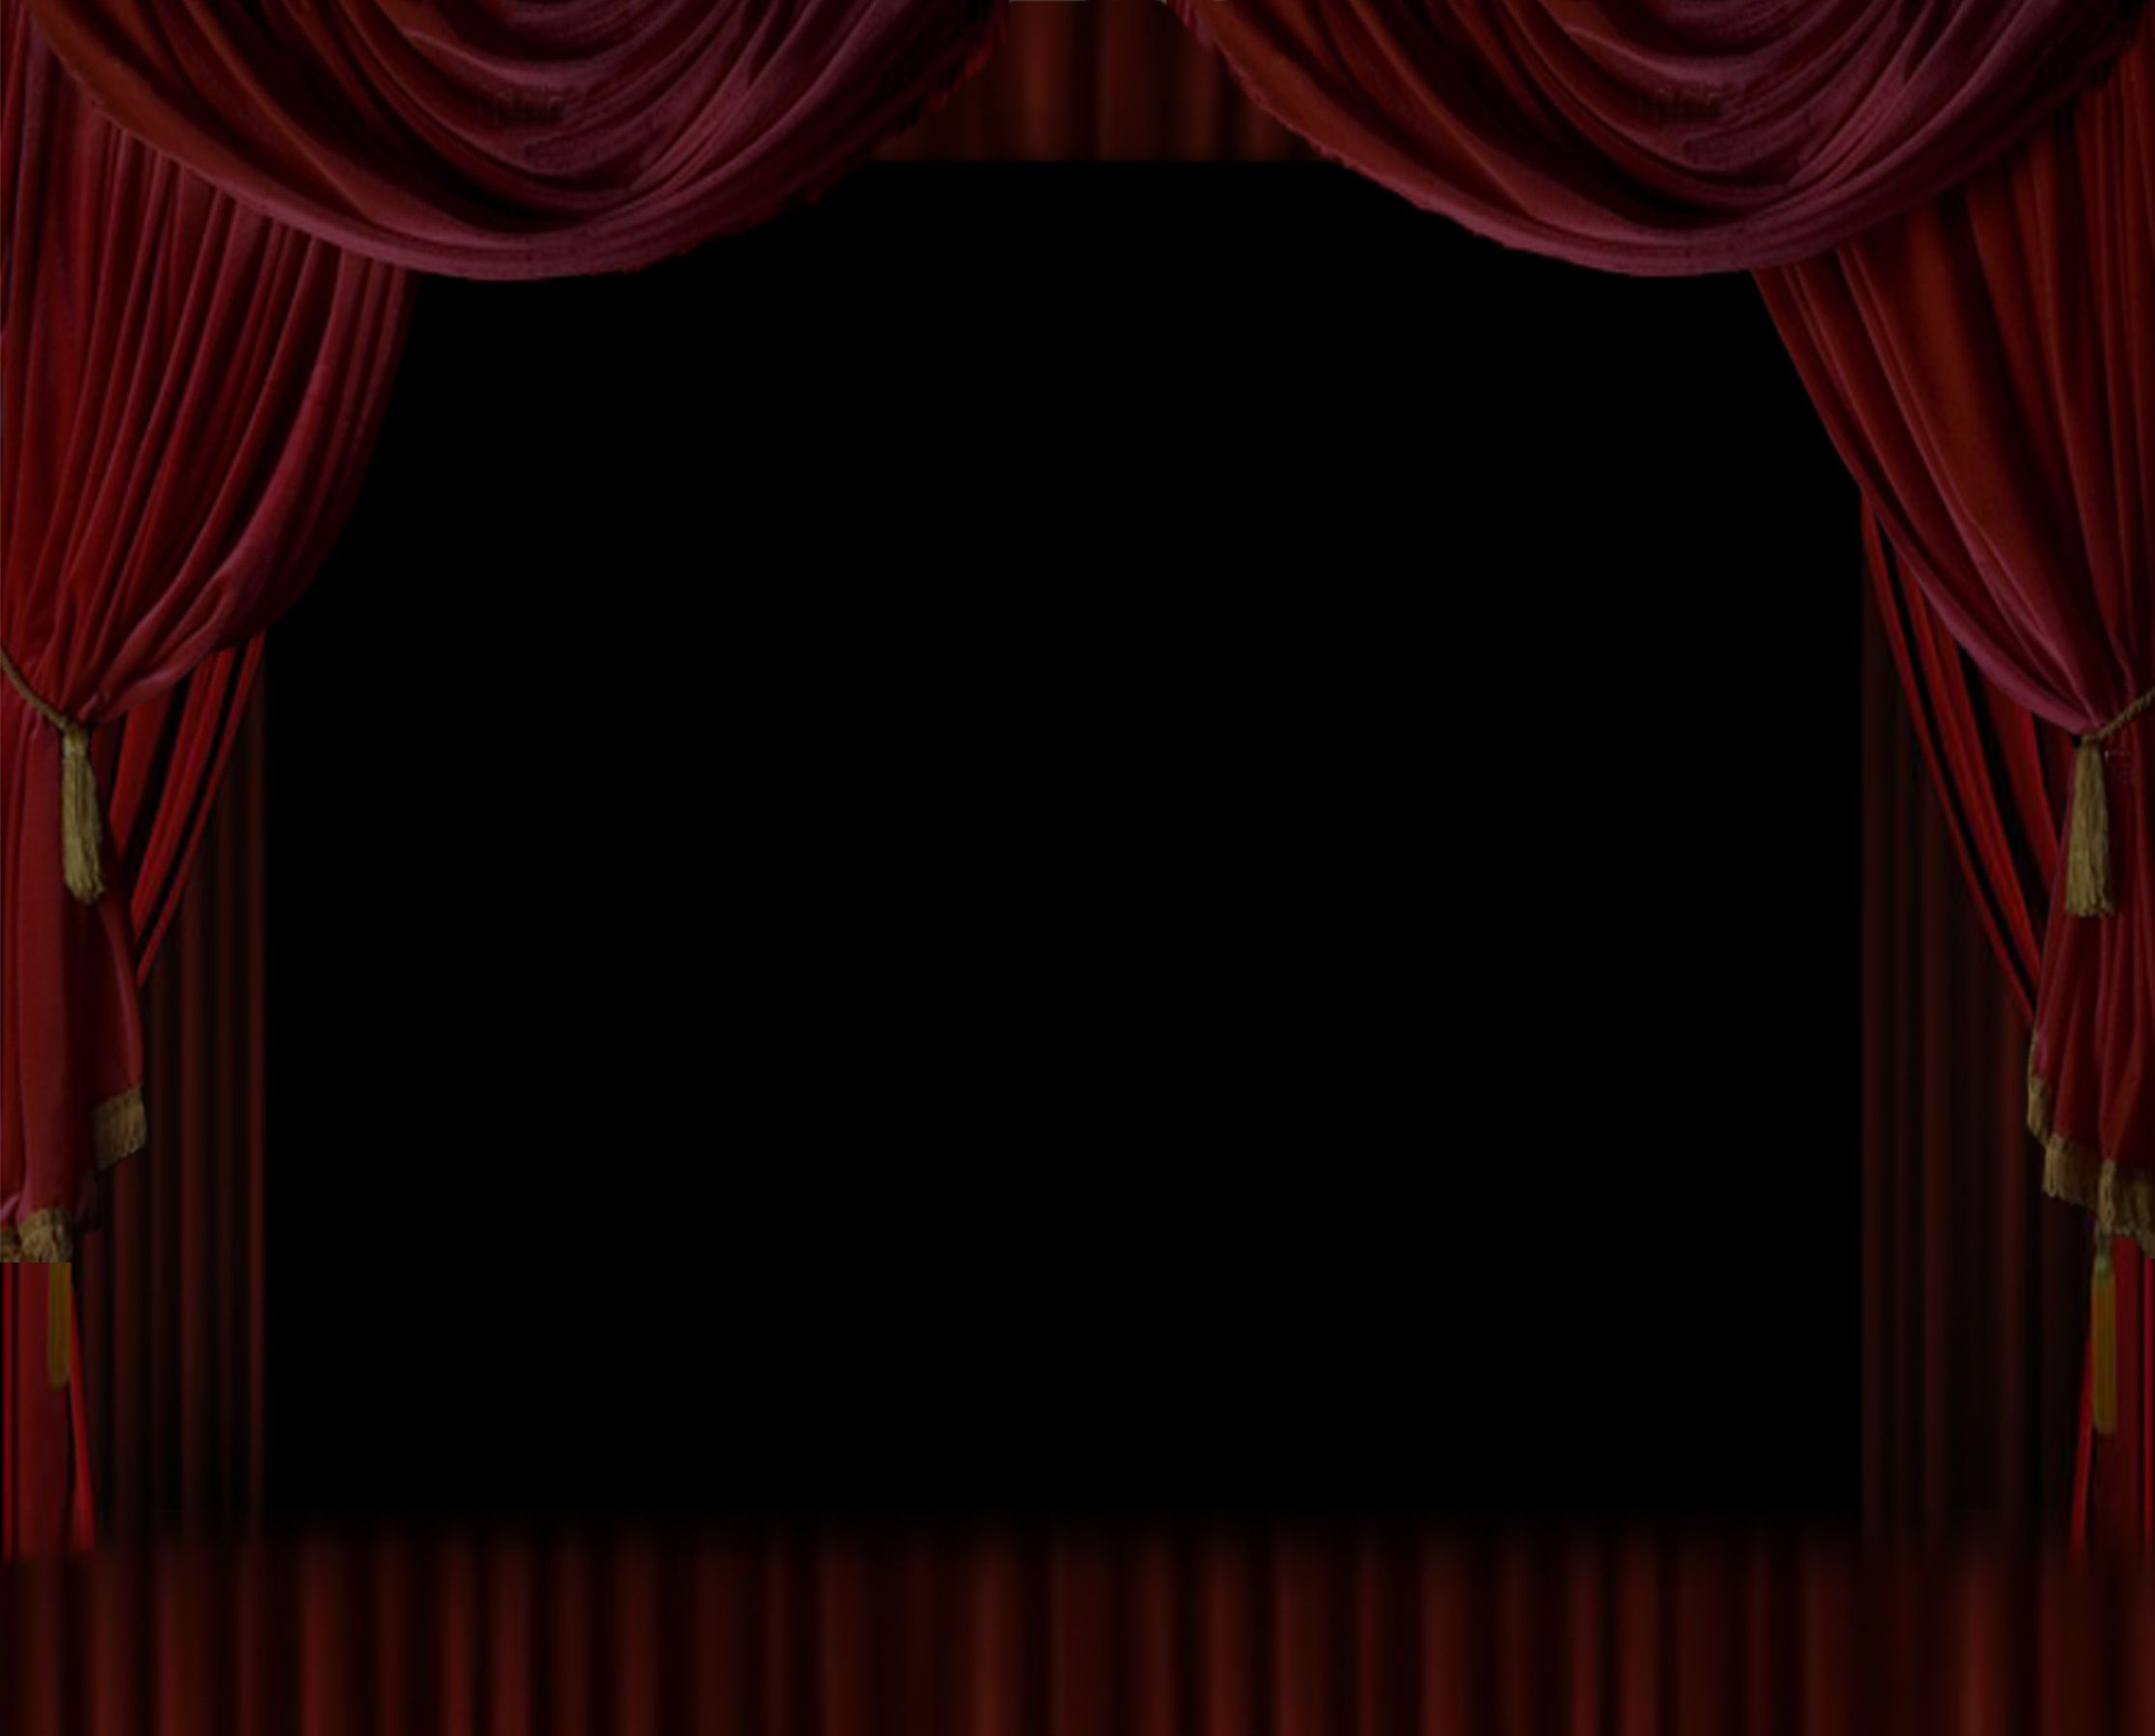 Theatre curtains png - Types Of Curtains In Theatre Explore Curtains Theater Curtains Jpg And More